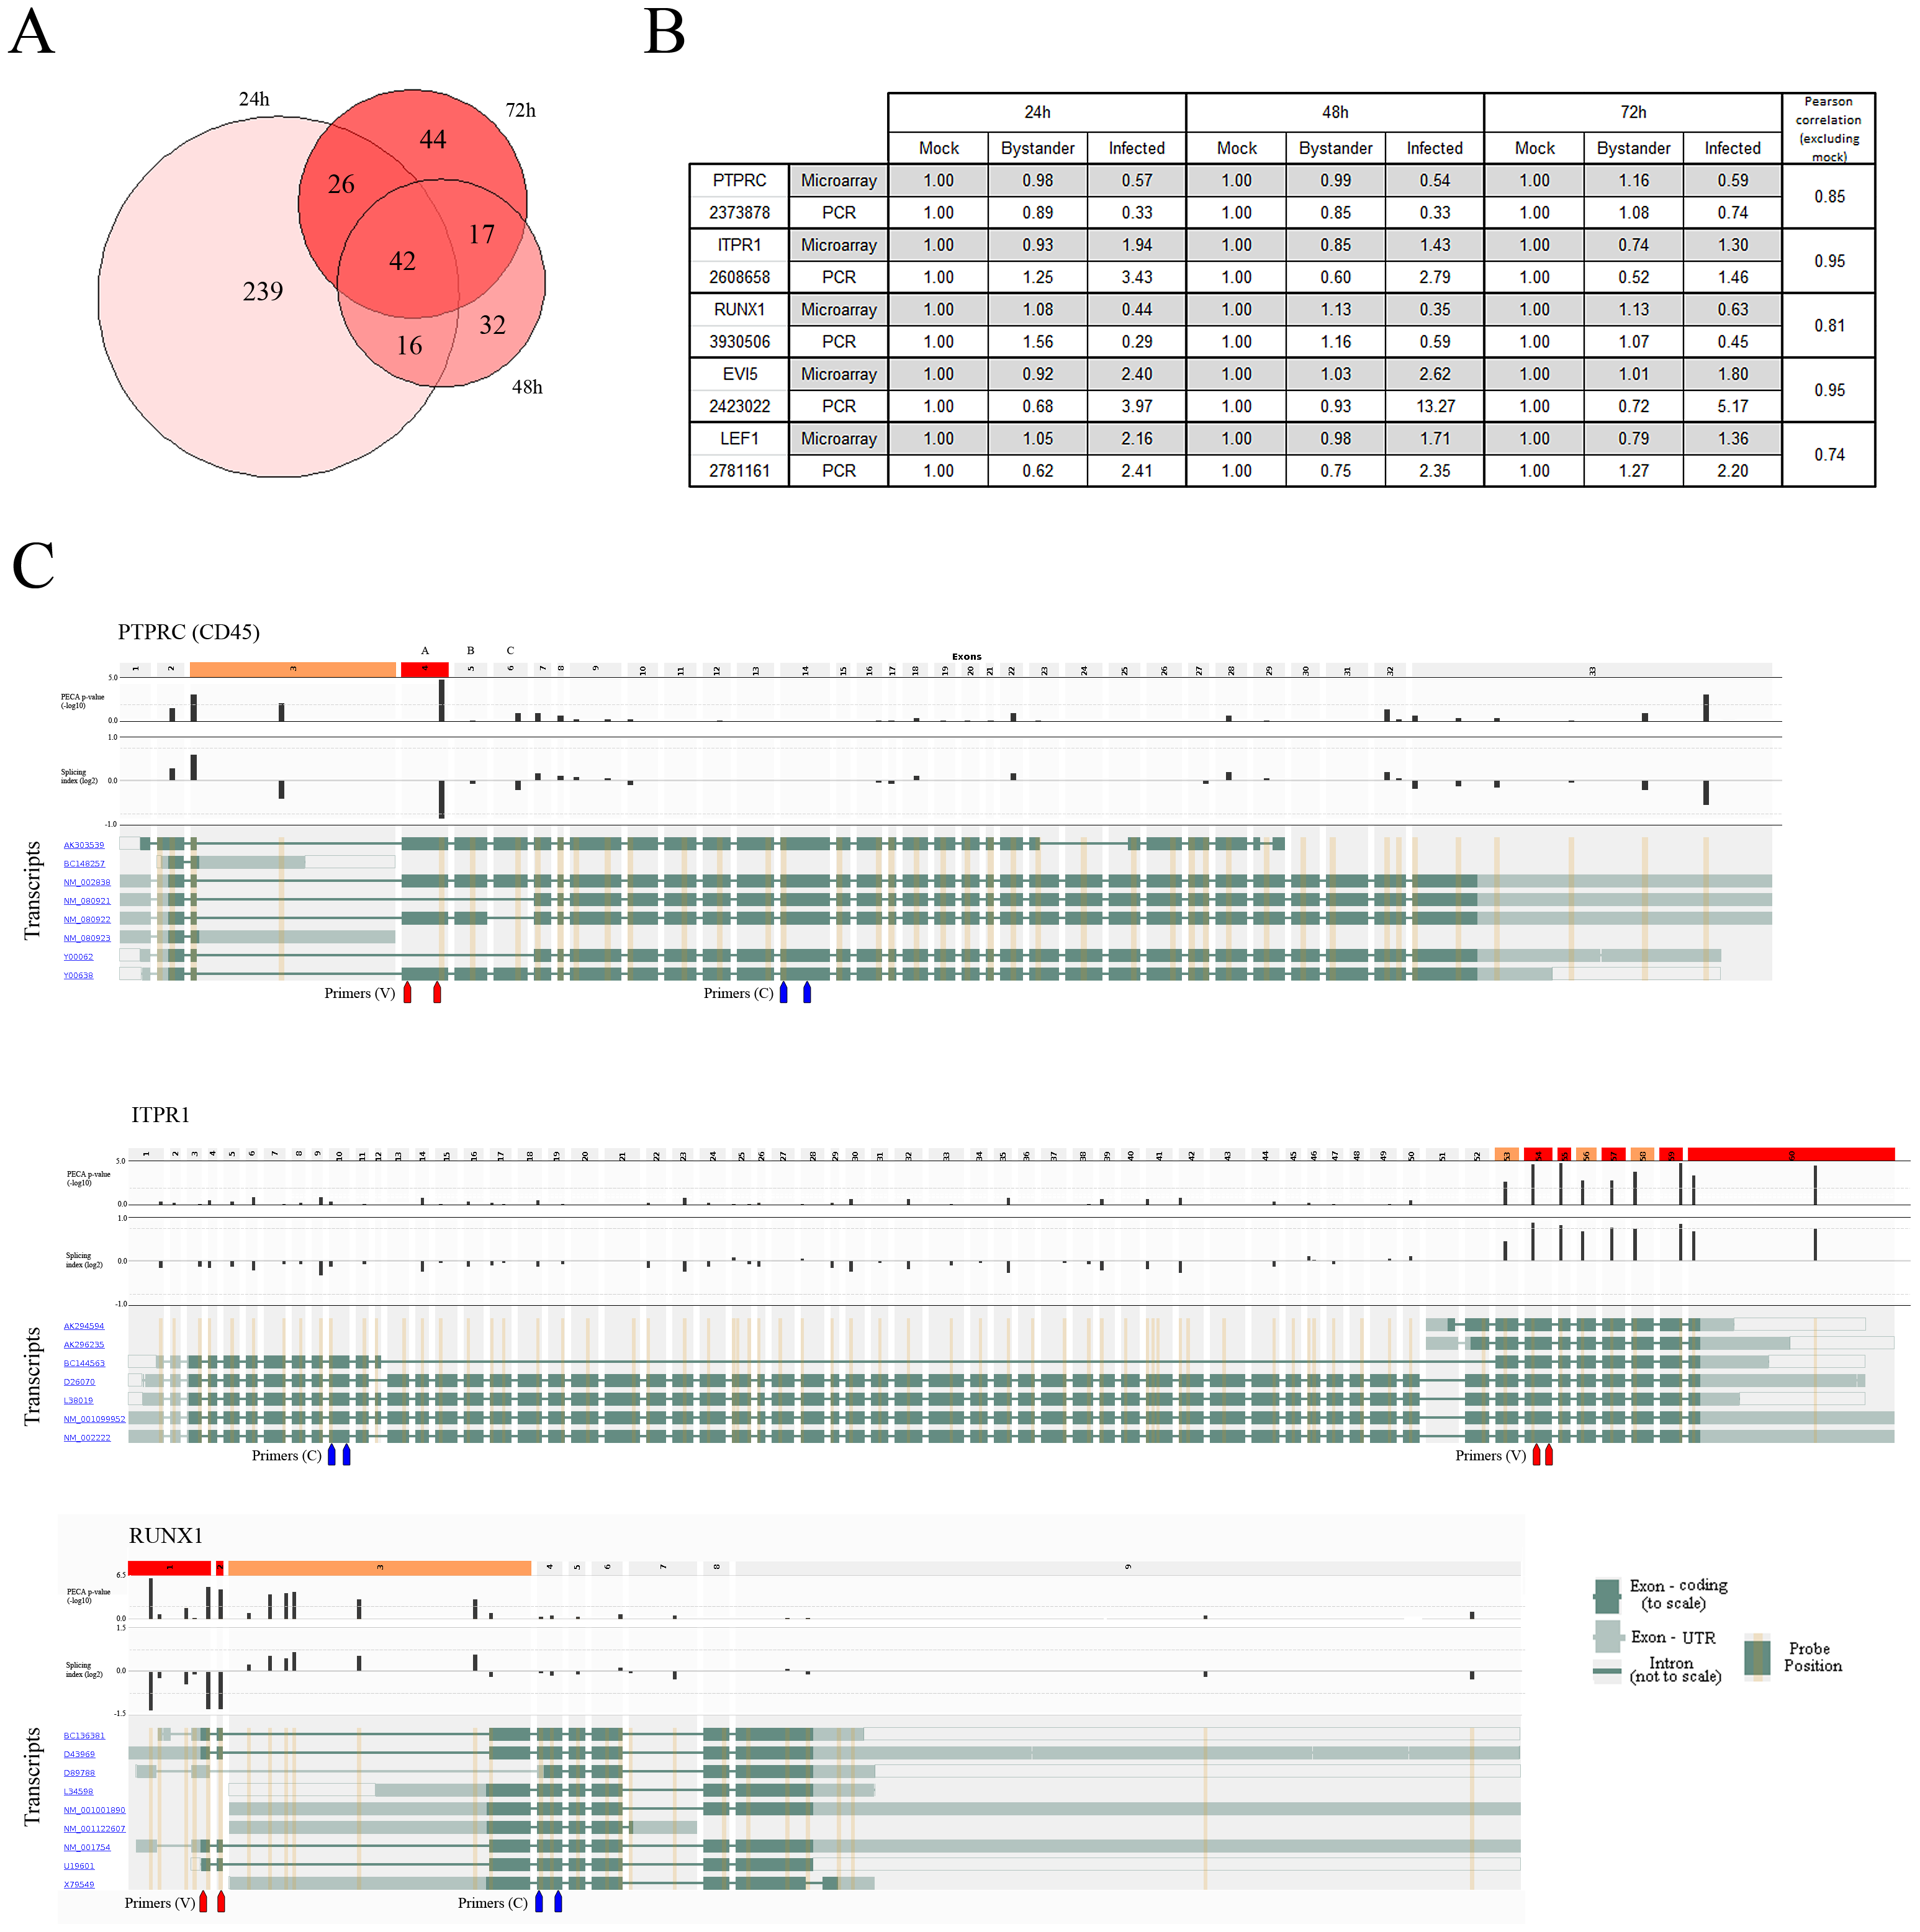 Alternative splicing events are found in HIV-1-infected cells.